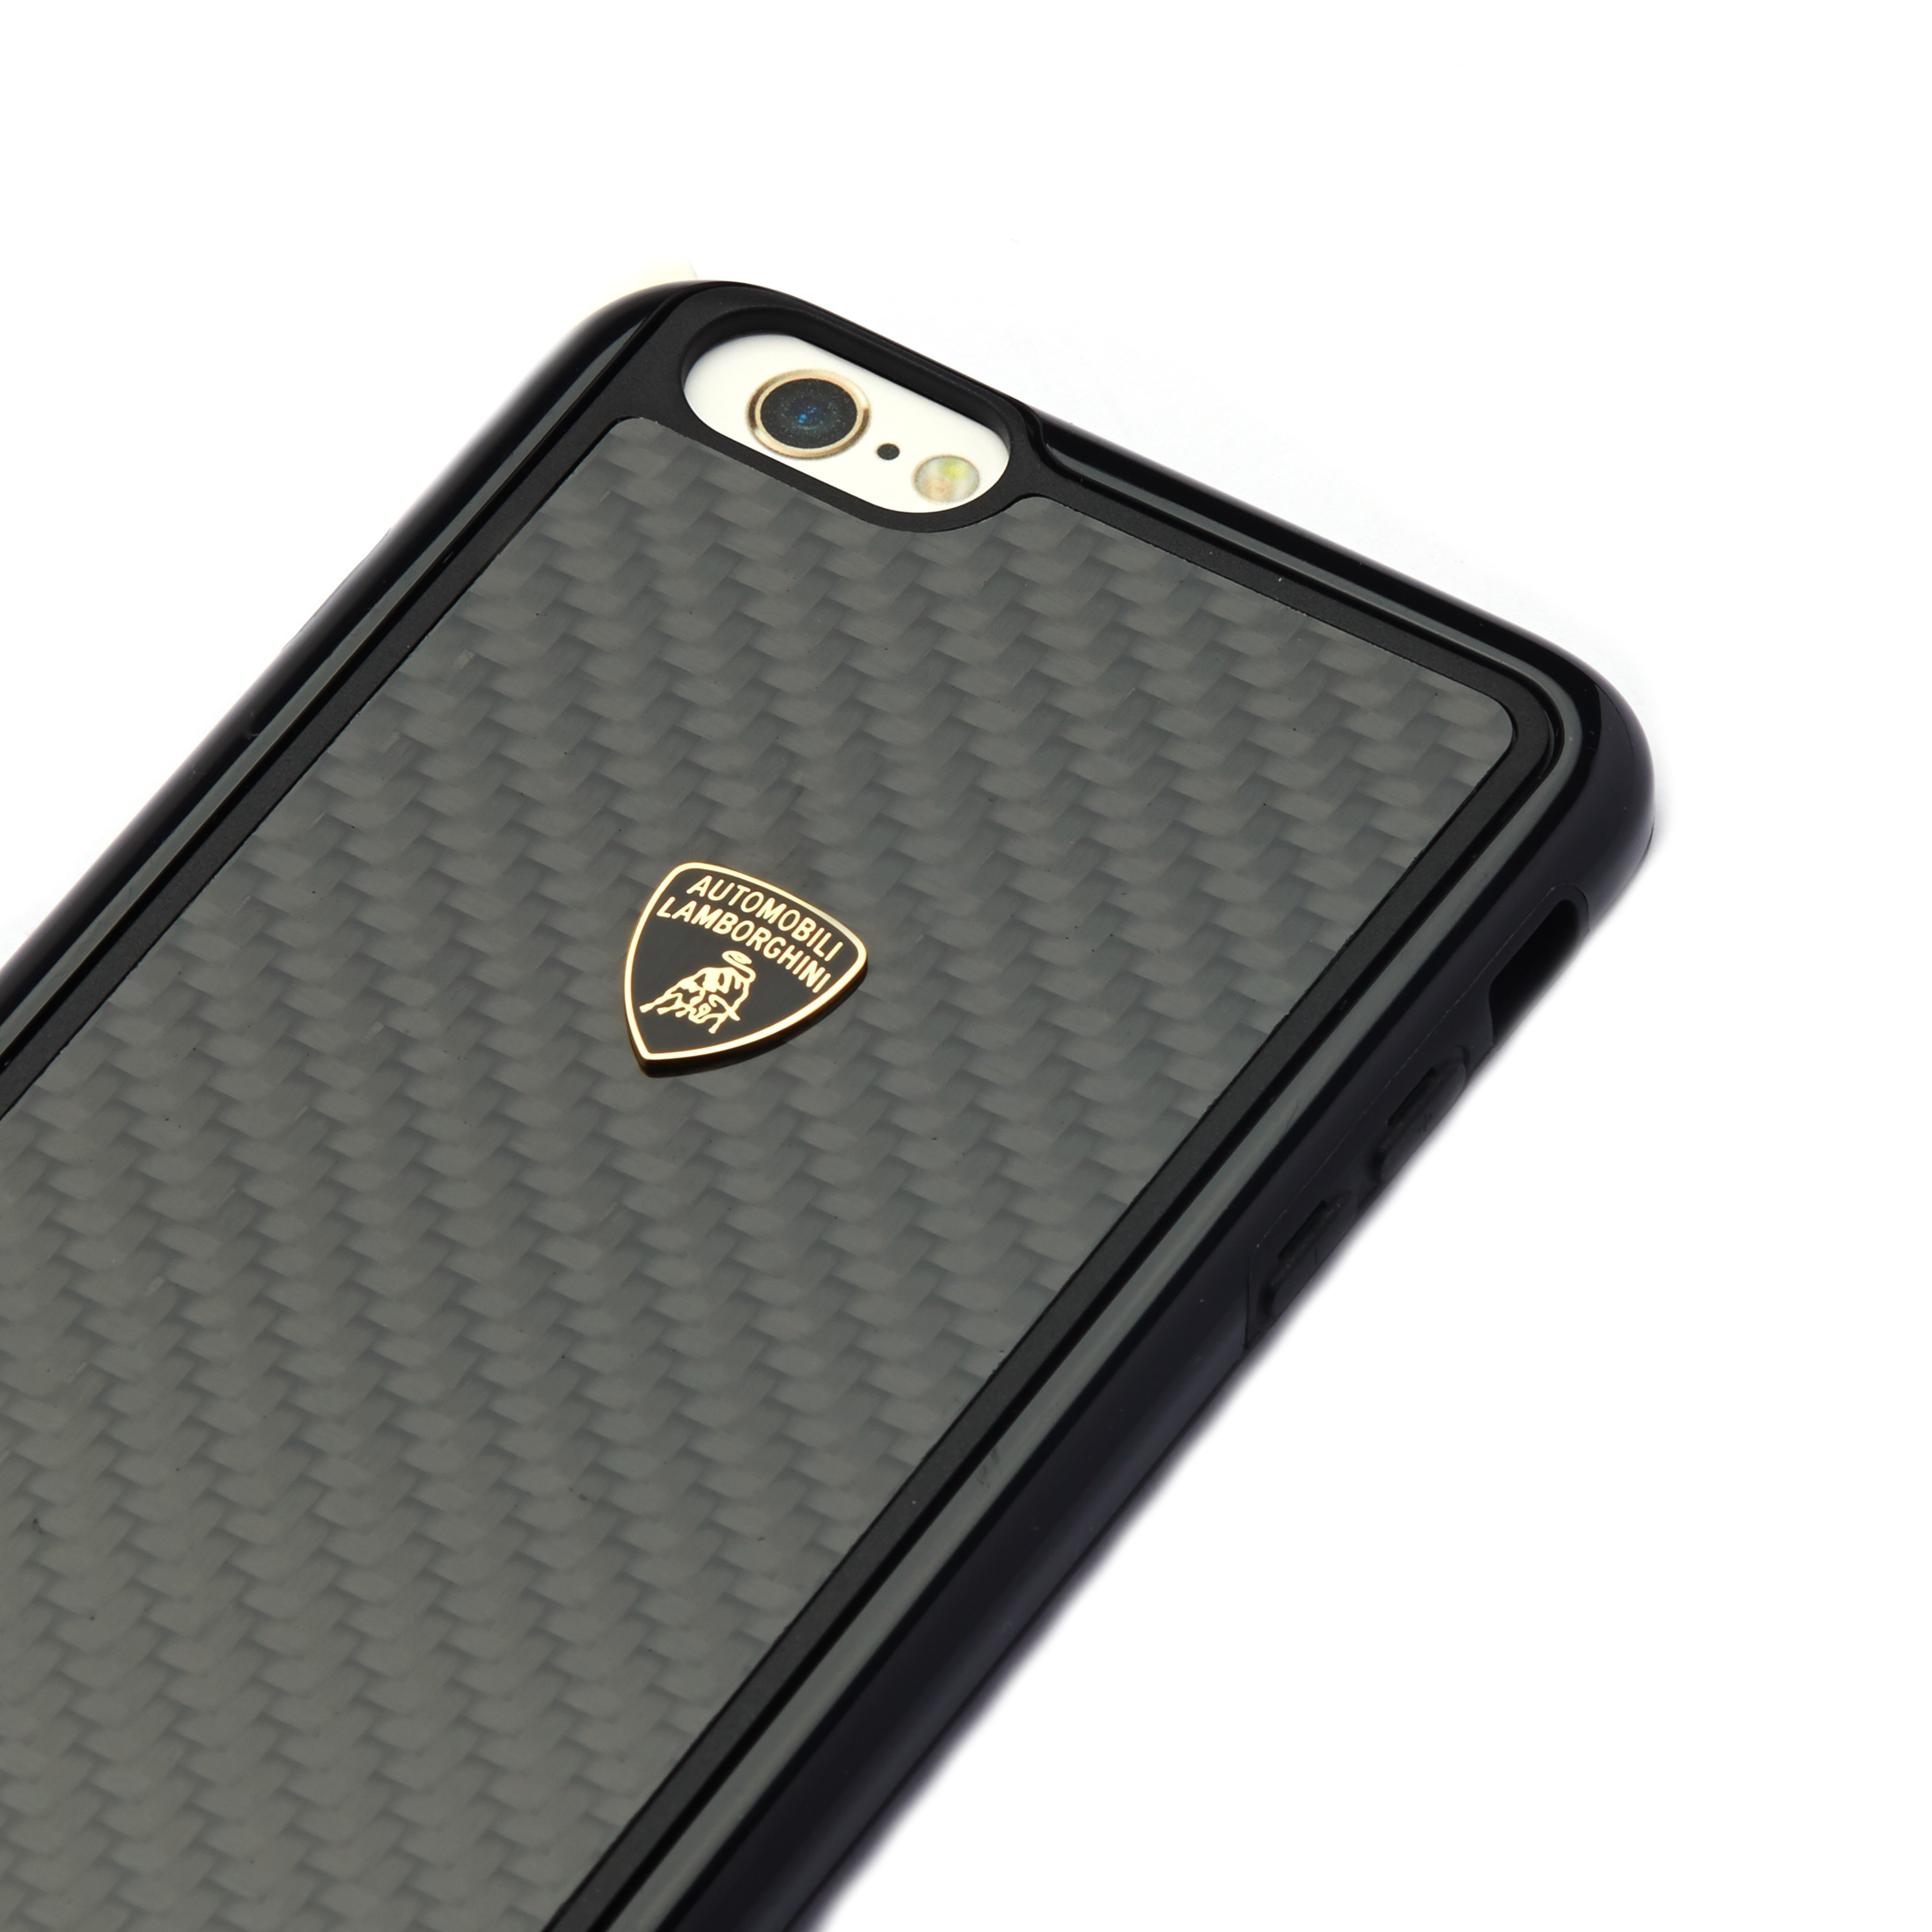 new product aedbe 42169 Lamborghini ® Apple iPhone 6 / 6S Official 3D Carbon Fiber Limited Edition  Case Back Cover